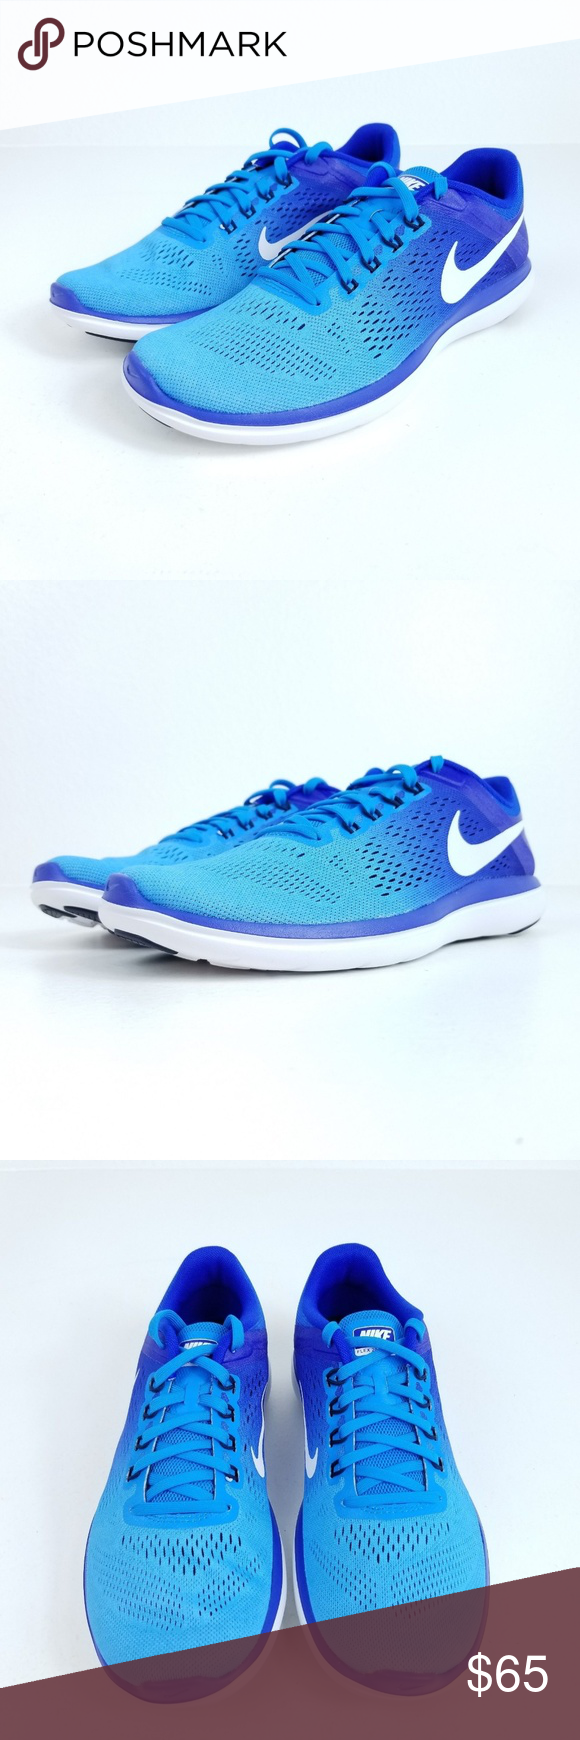 b5f3eab51e533 NIKE Flex 2016 RN Running Shoes Womens Product Name  Flex 2016 RN Running  Shoes Style Number  830751 401 Size  11 Color  Blue Glow •Brand new in box  •100% ...